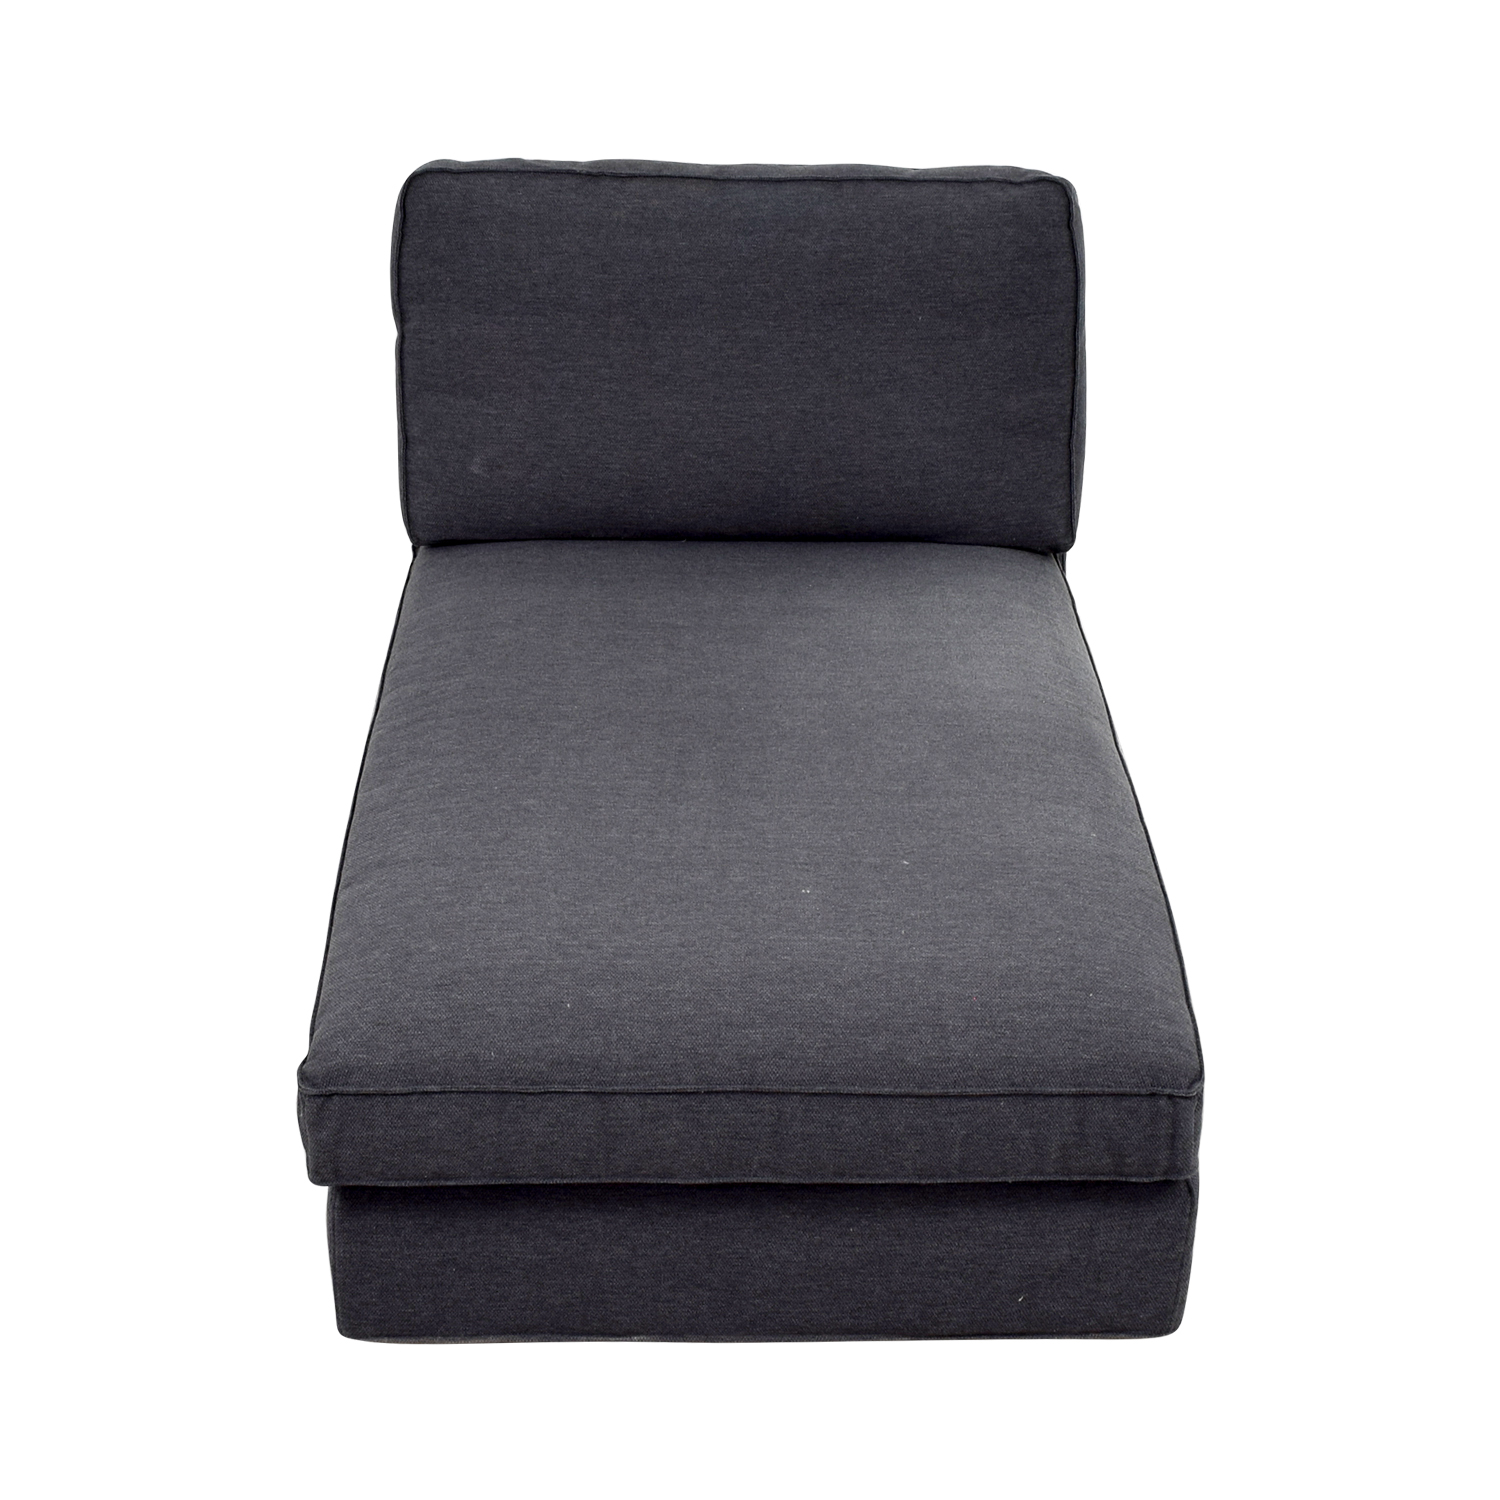 Pottery Barn Chaise Lounge sale